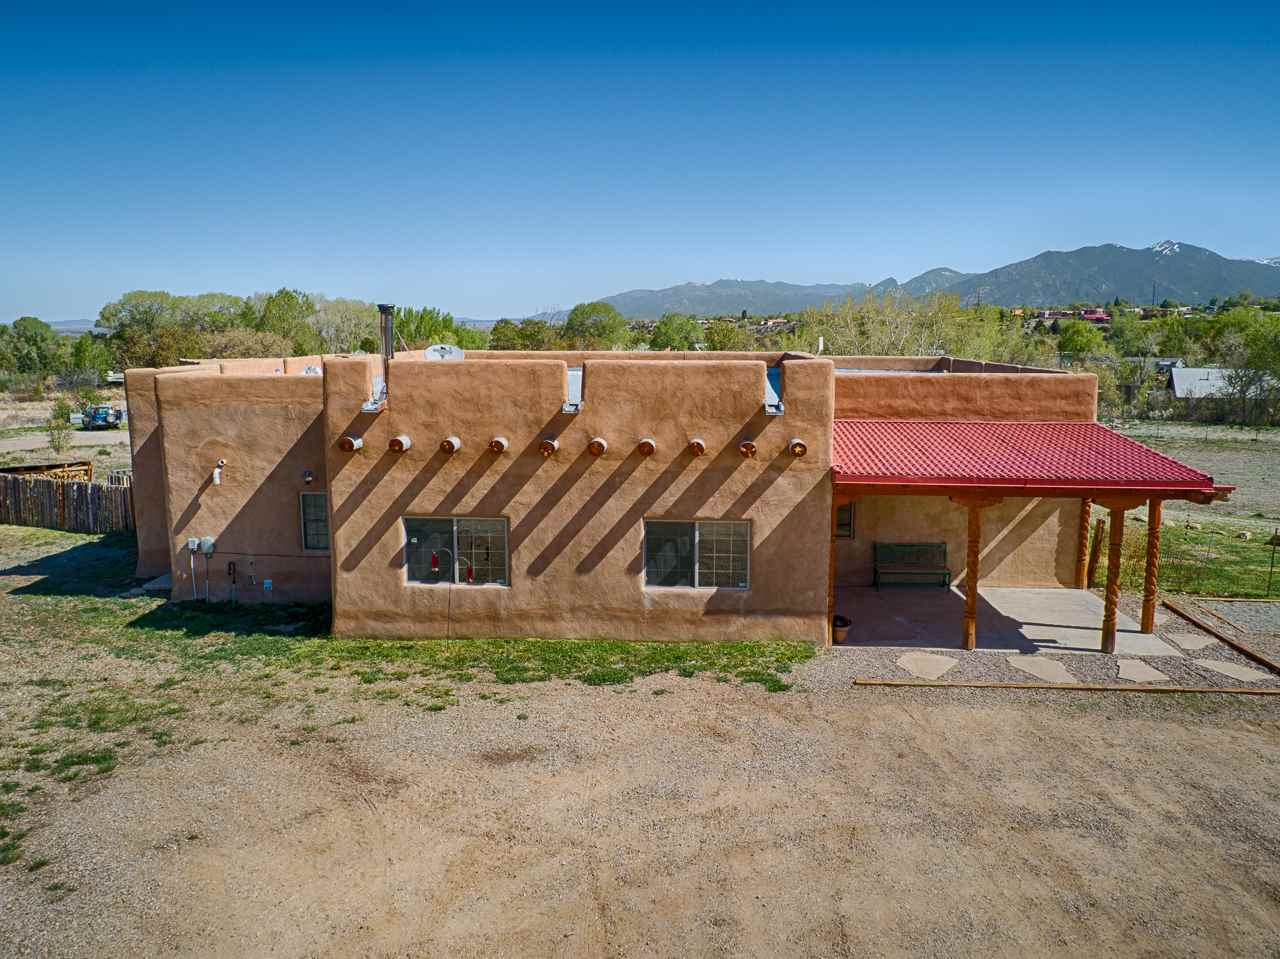 110A Vista Del Valle, Ranchos De Taos, NM 87557